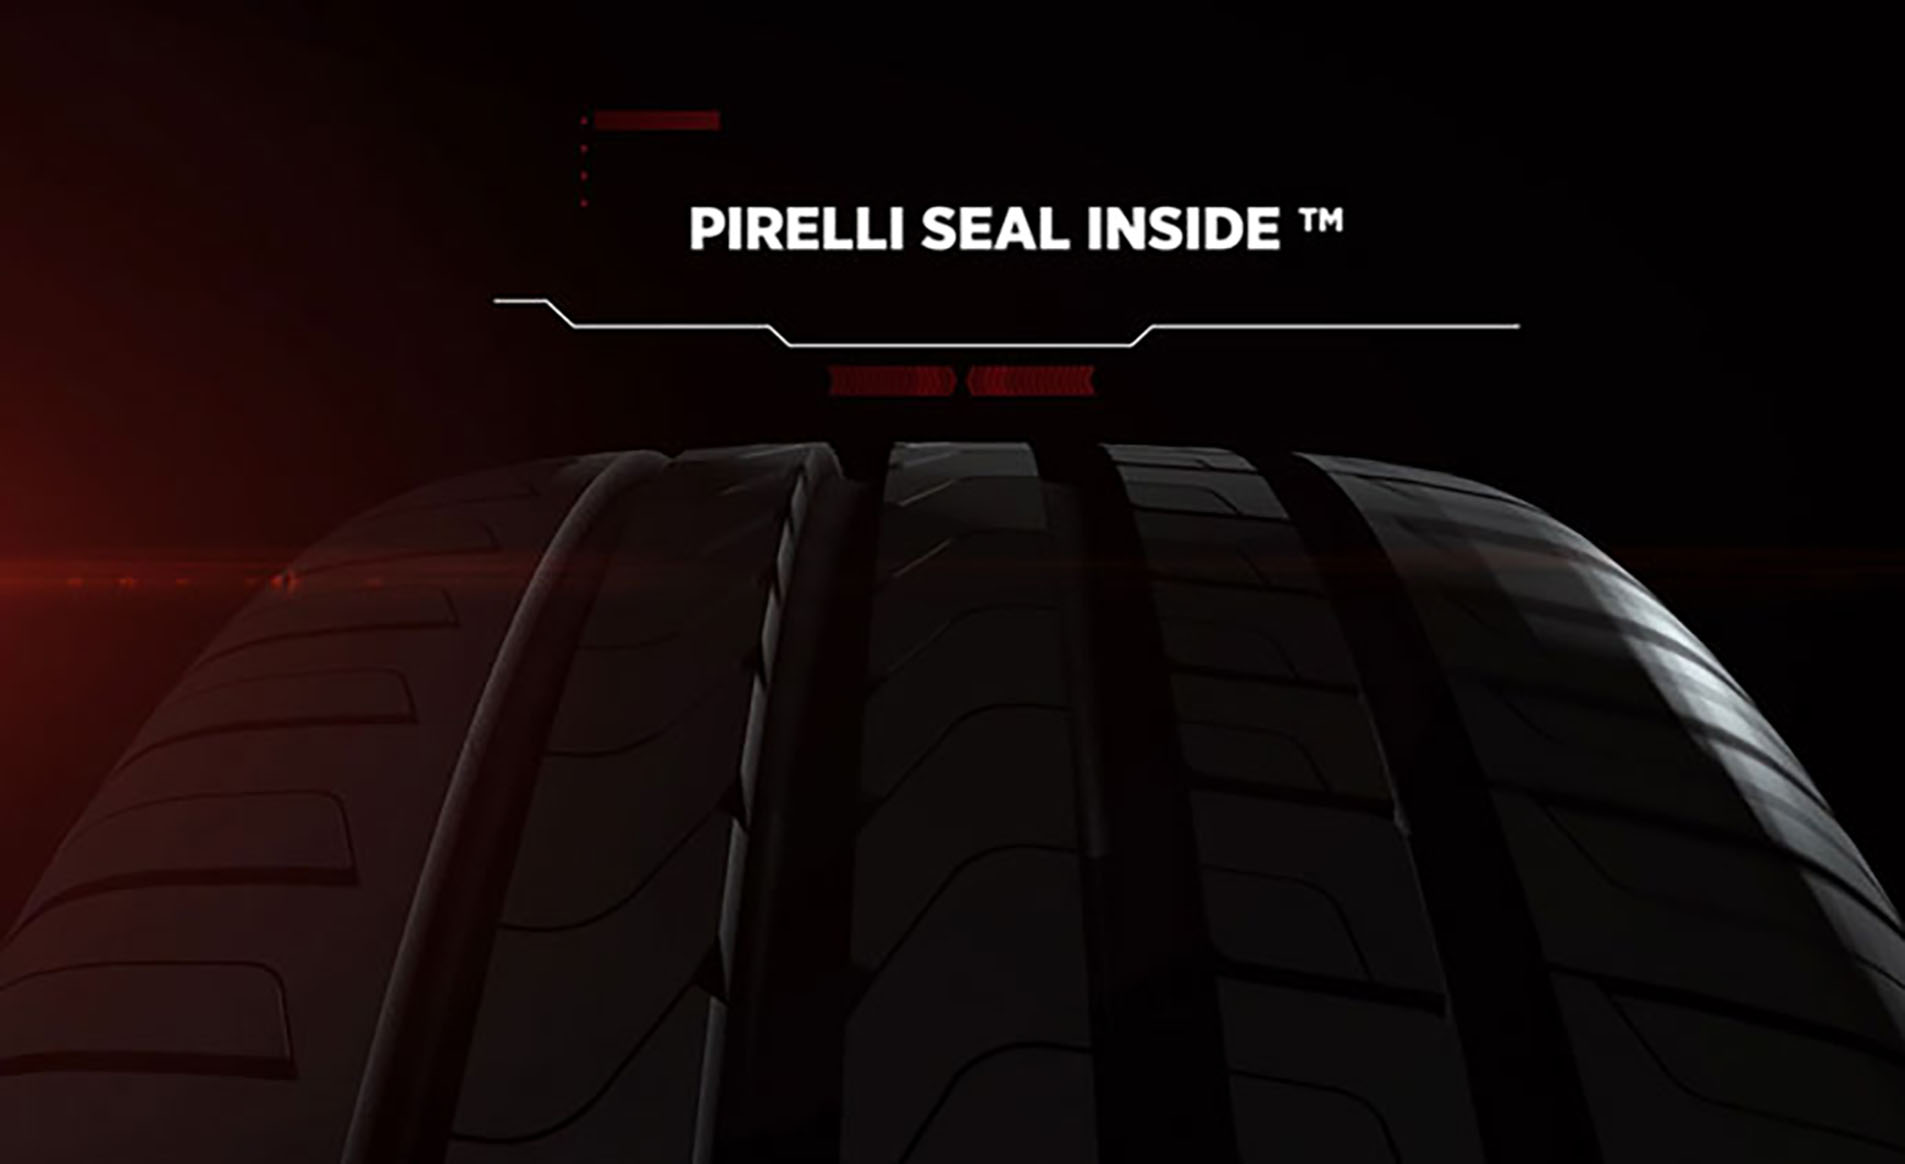 HOW SEAL INSIDE TYRES WORK